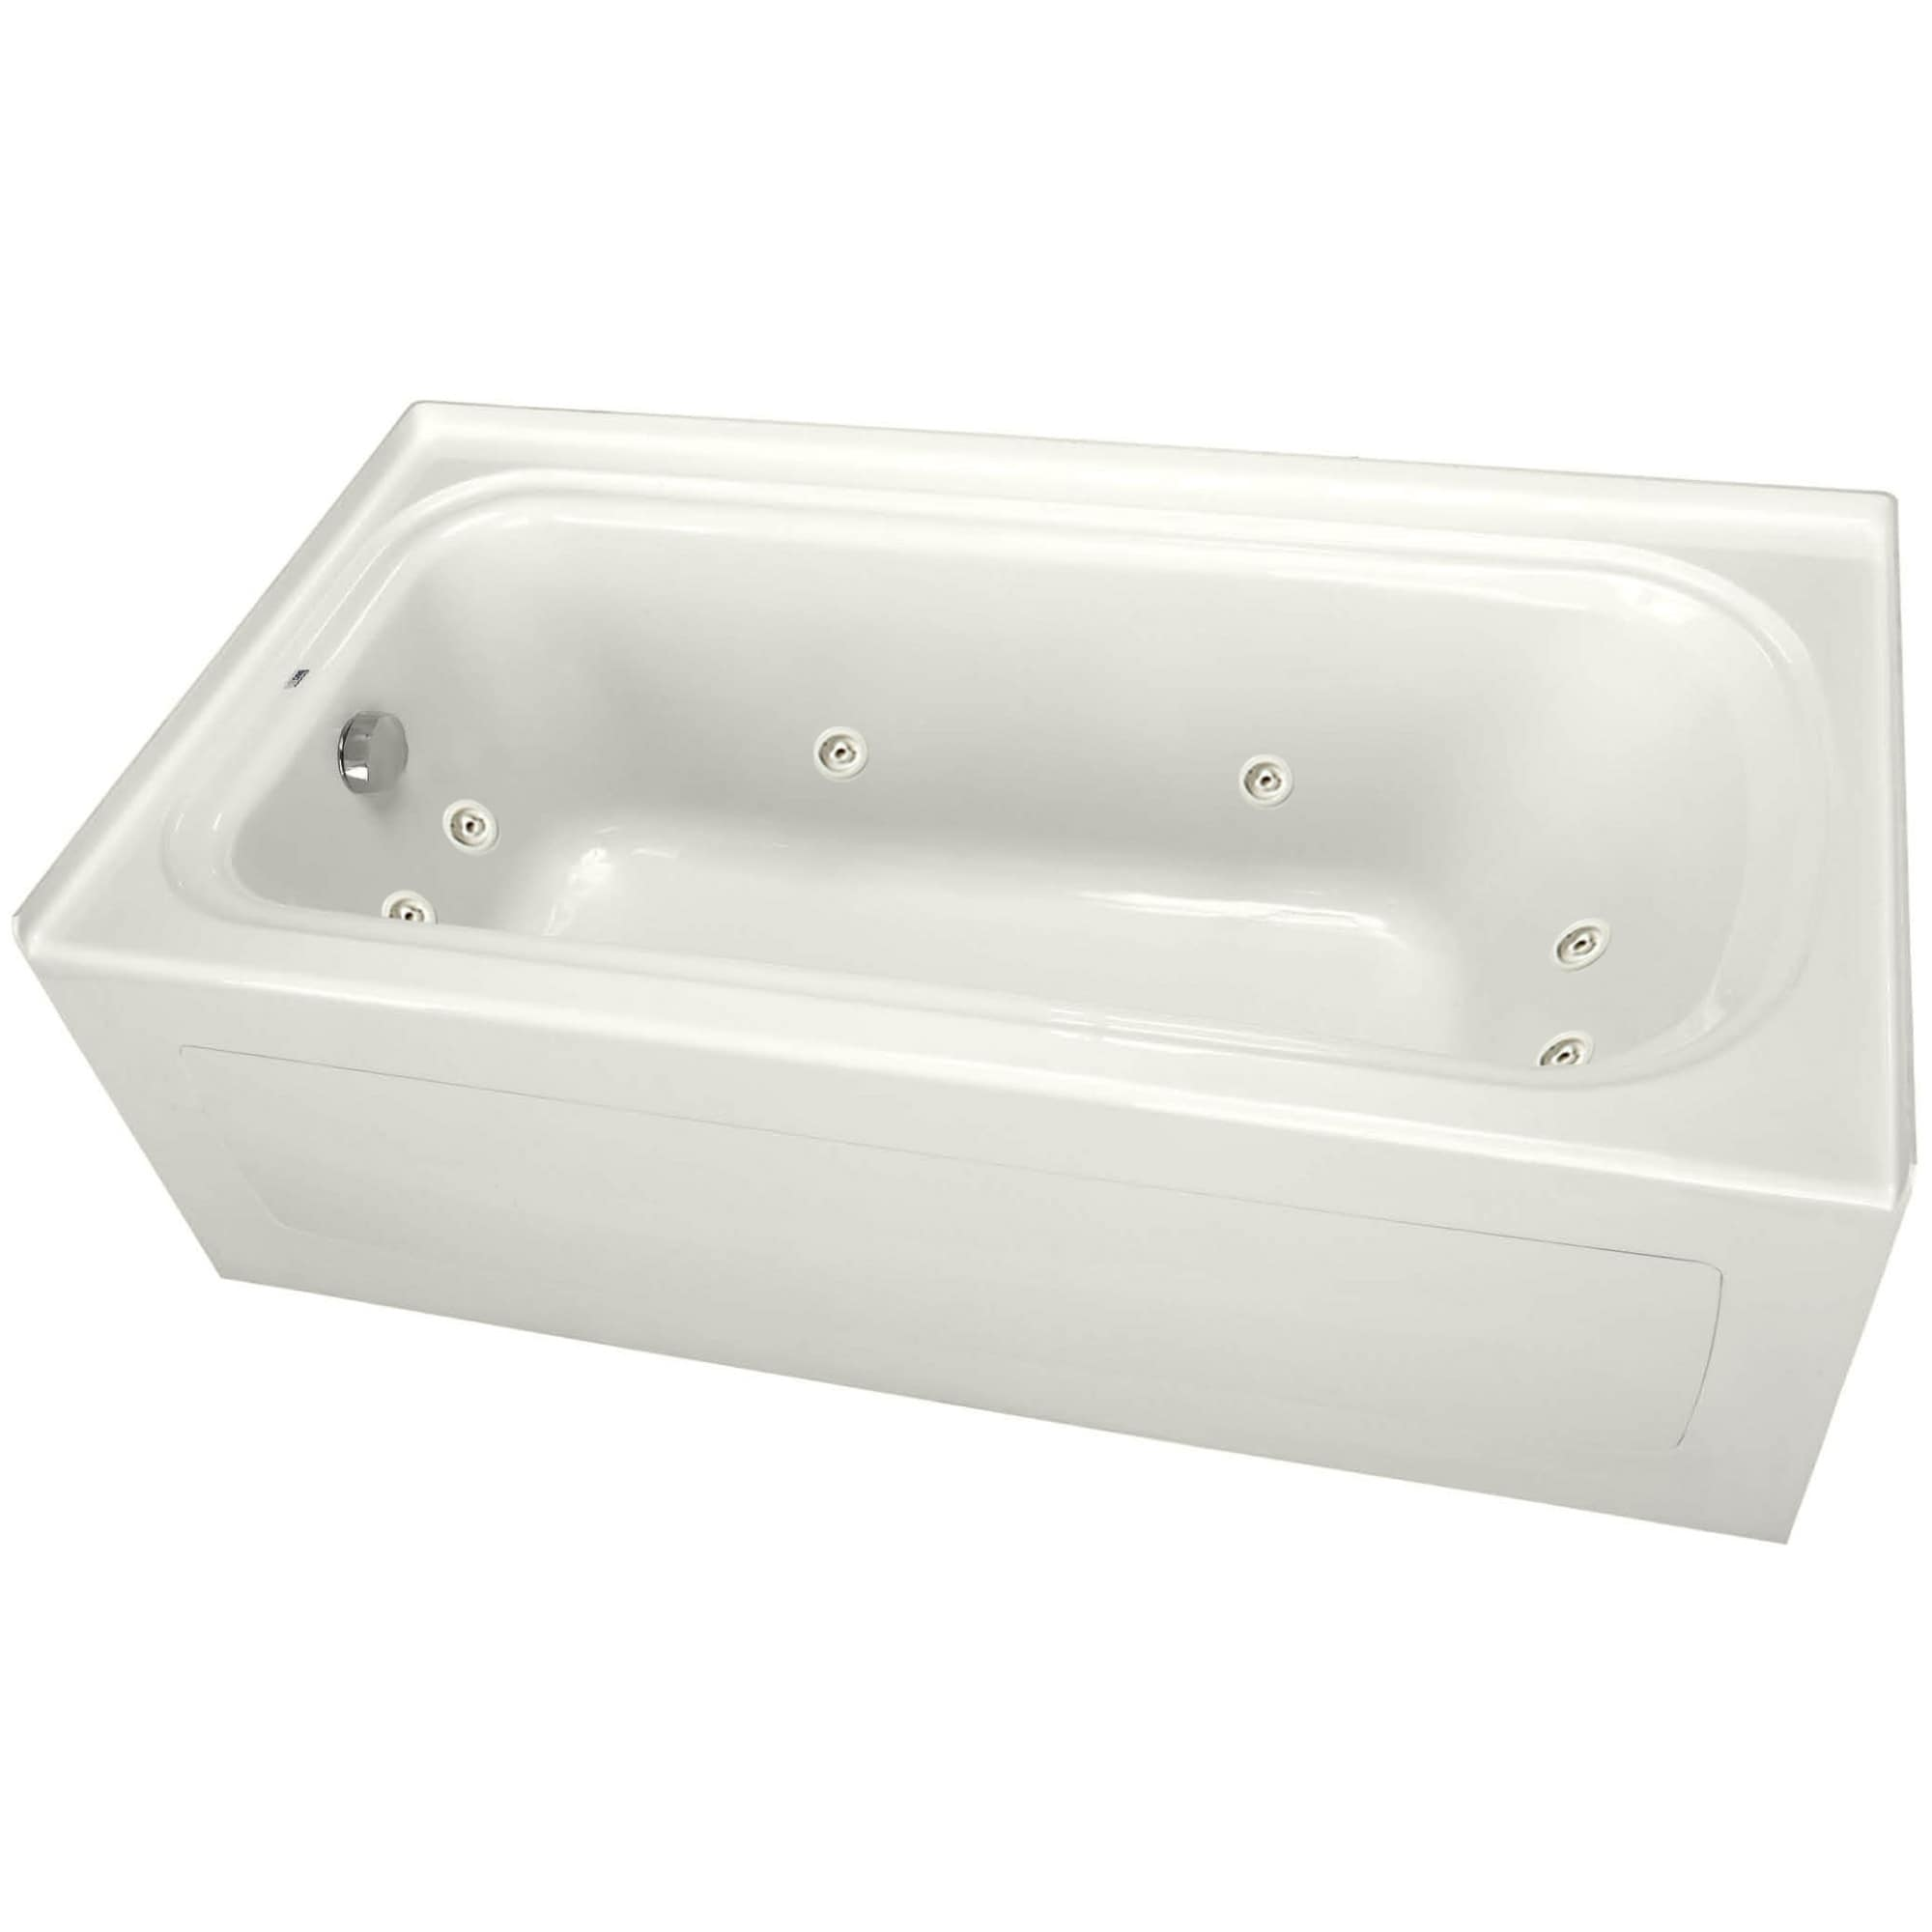 Shop Black Friday Deals On Proflo Pfw6042alsk 60 X 42 Alcove 8 Jet Whirlpool Bath Tub With Skirt Left Hand Drain And Right Hand Pump Overstock 16907440 White